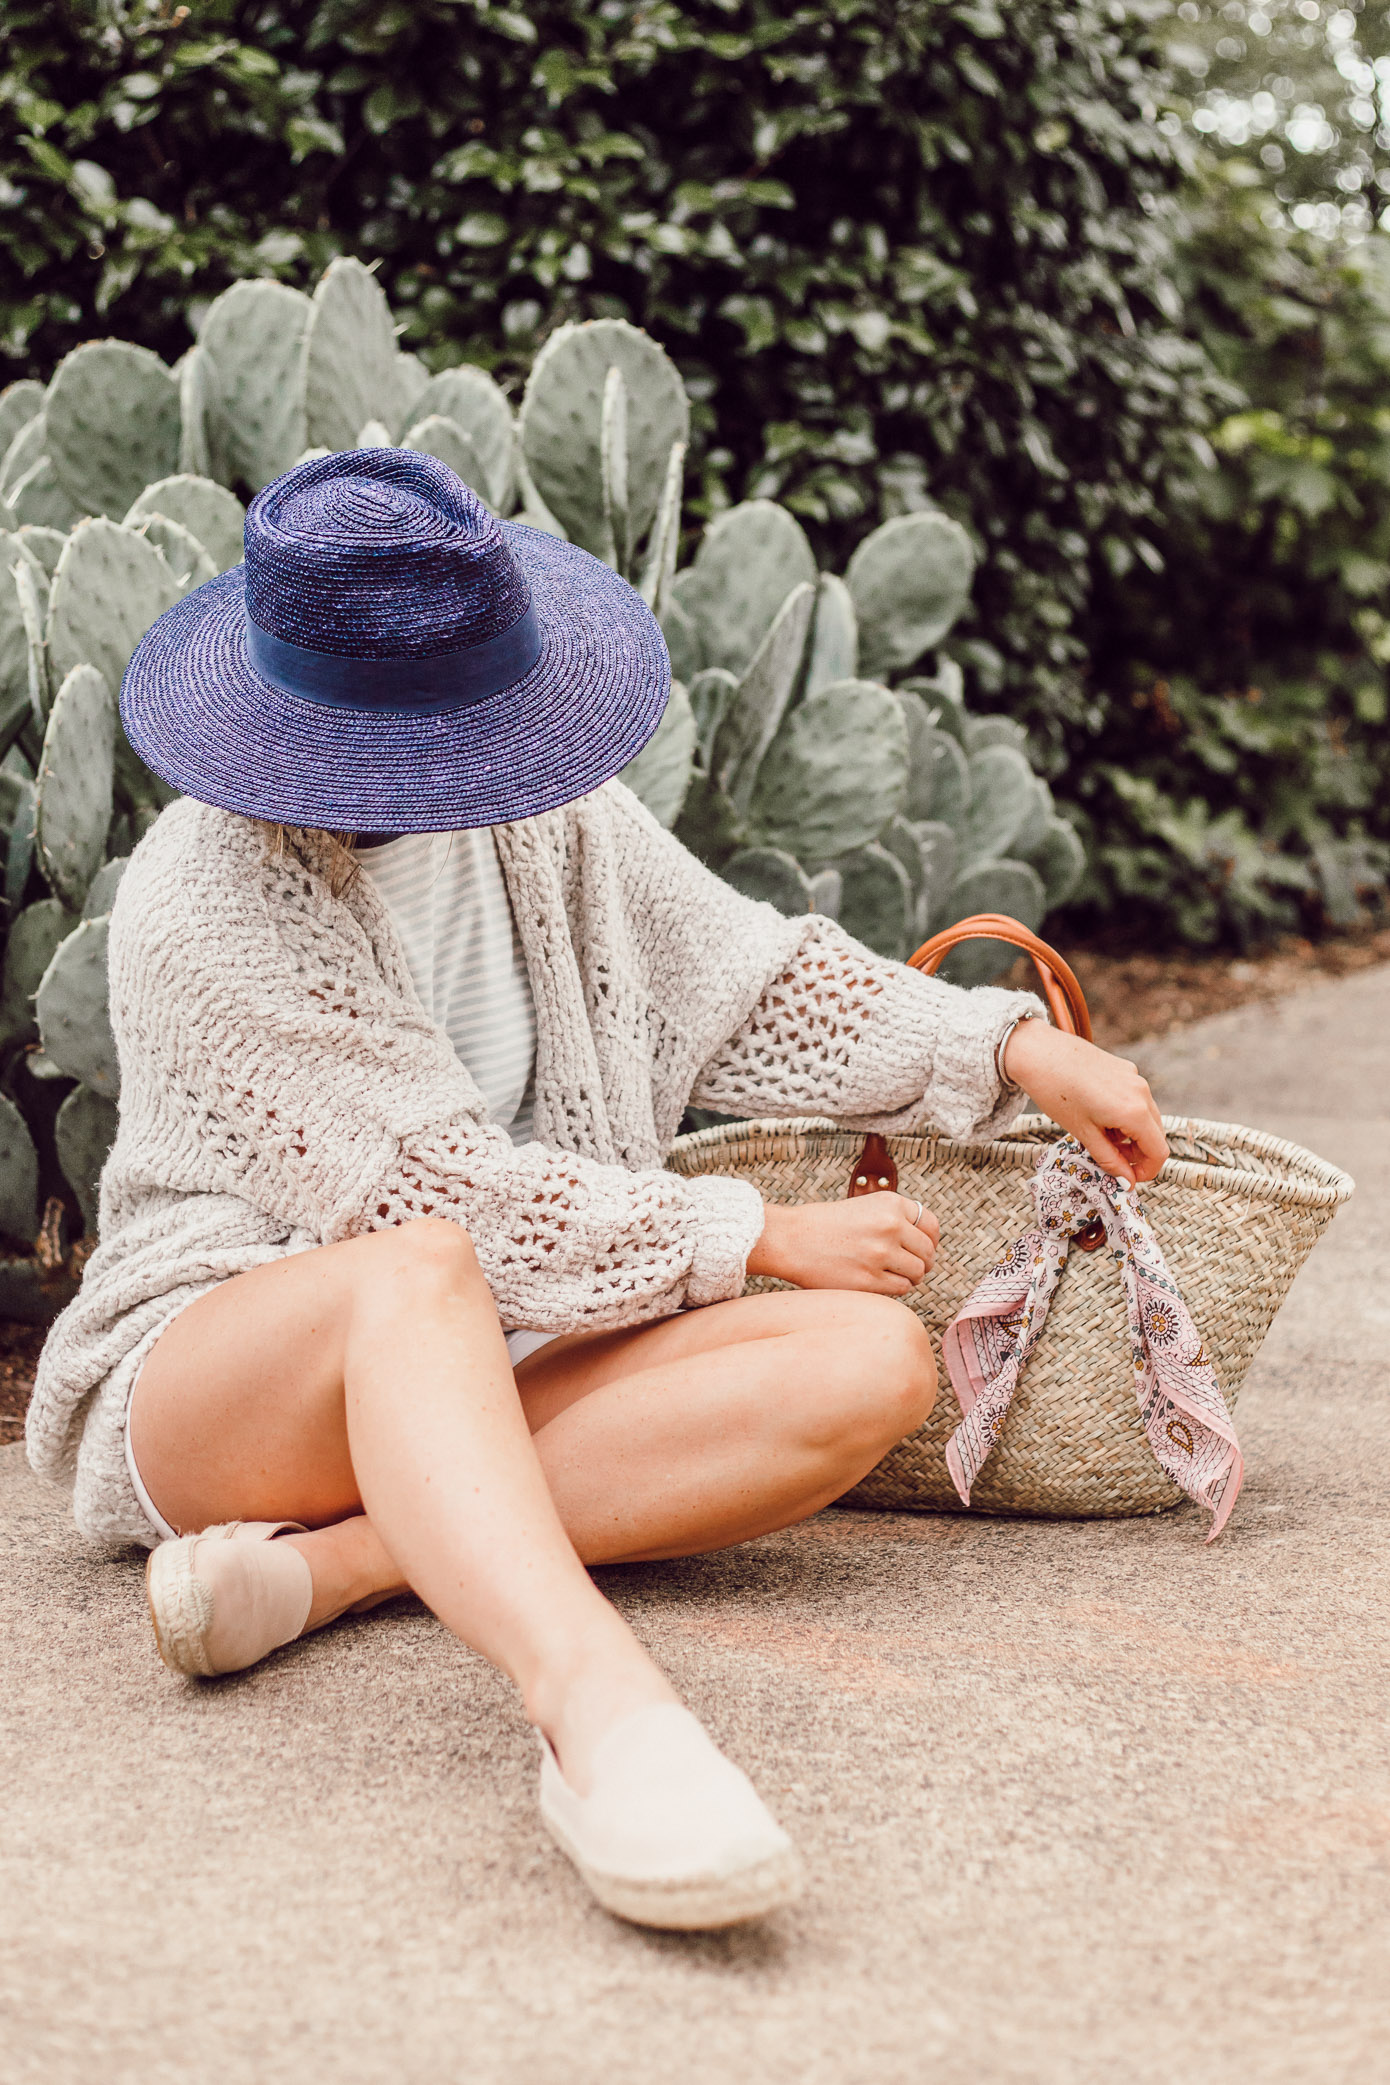 Navy Straw Hat, Free People Saturday Morning Cardigan, Natural Straw Tote | Casual Late Summer Outfit Idea featured on Louella Reese